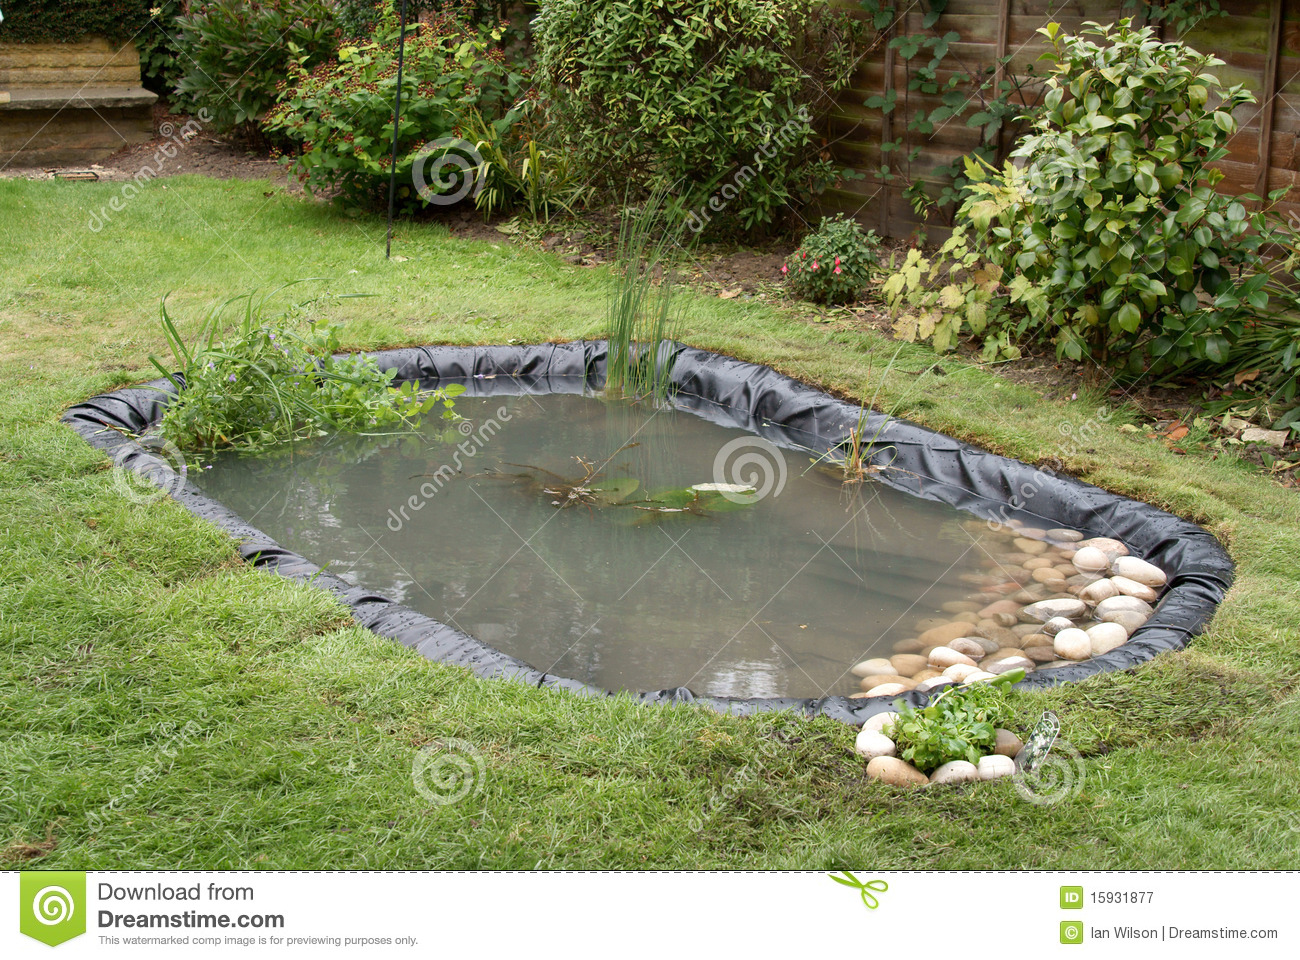 Making a garden pond stock image image of lillies rubber for Making a fish pond